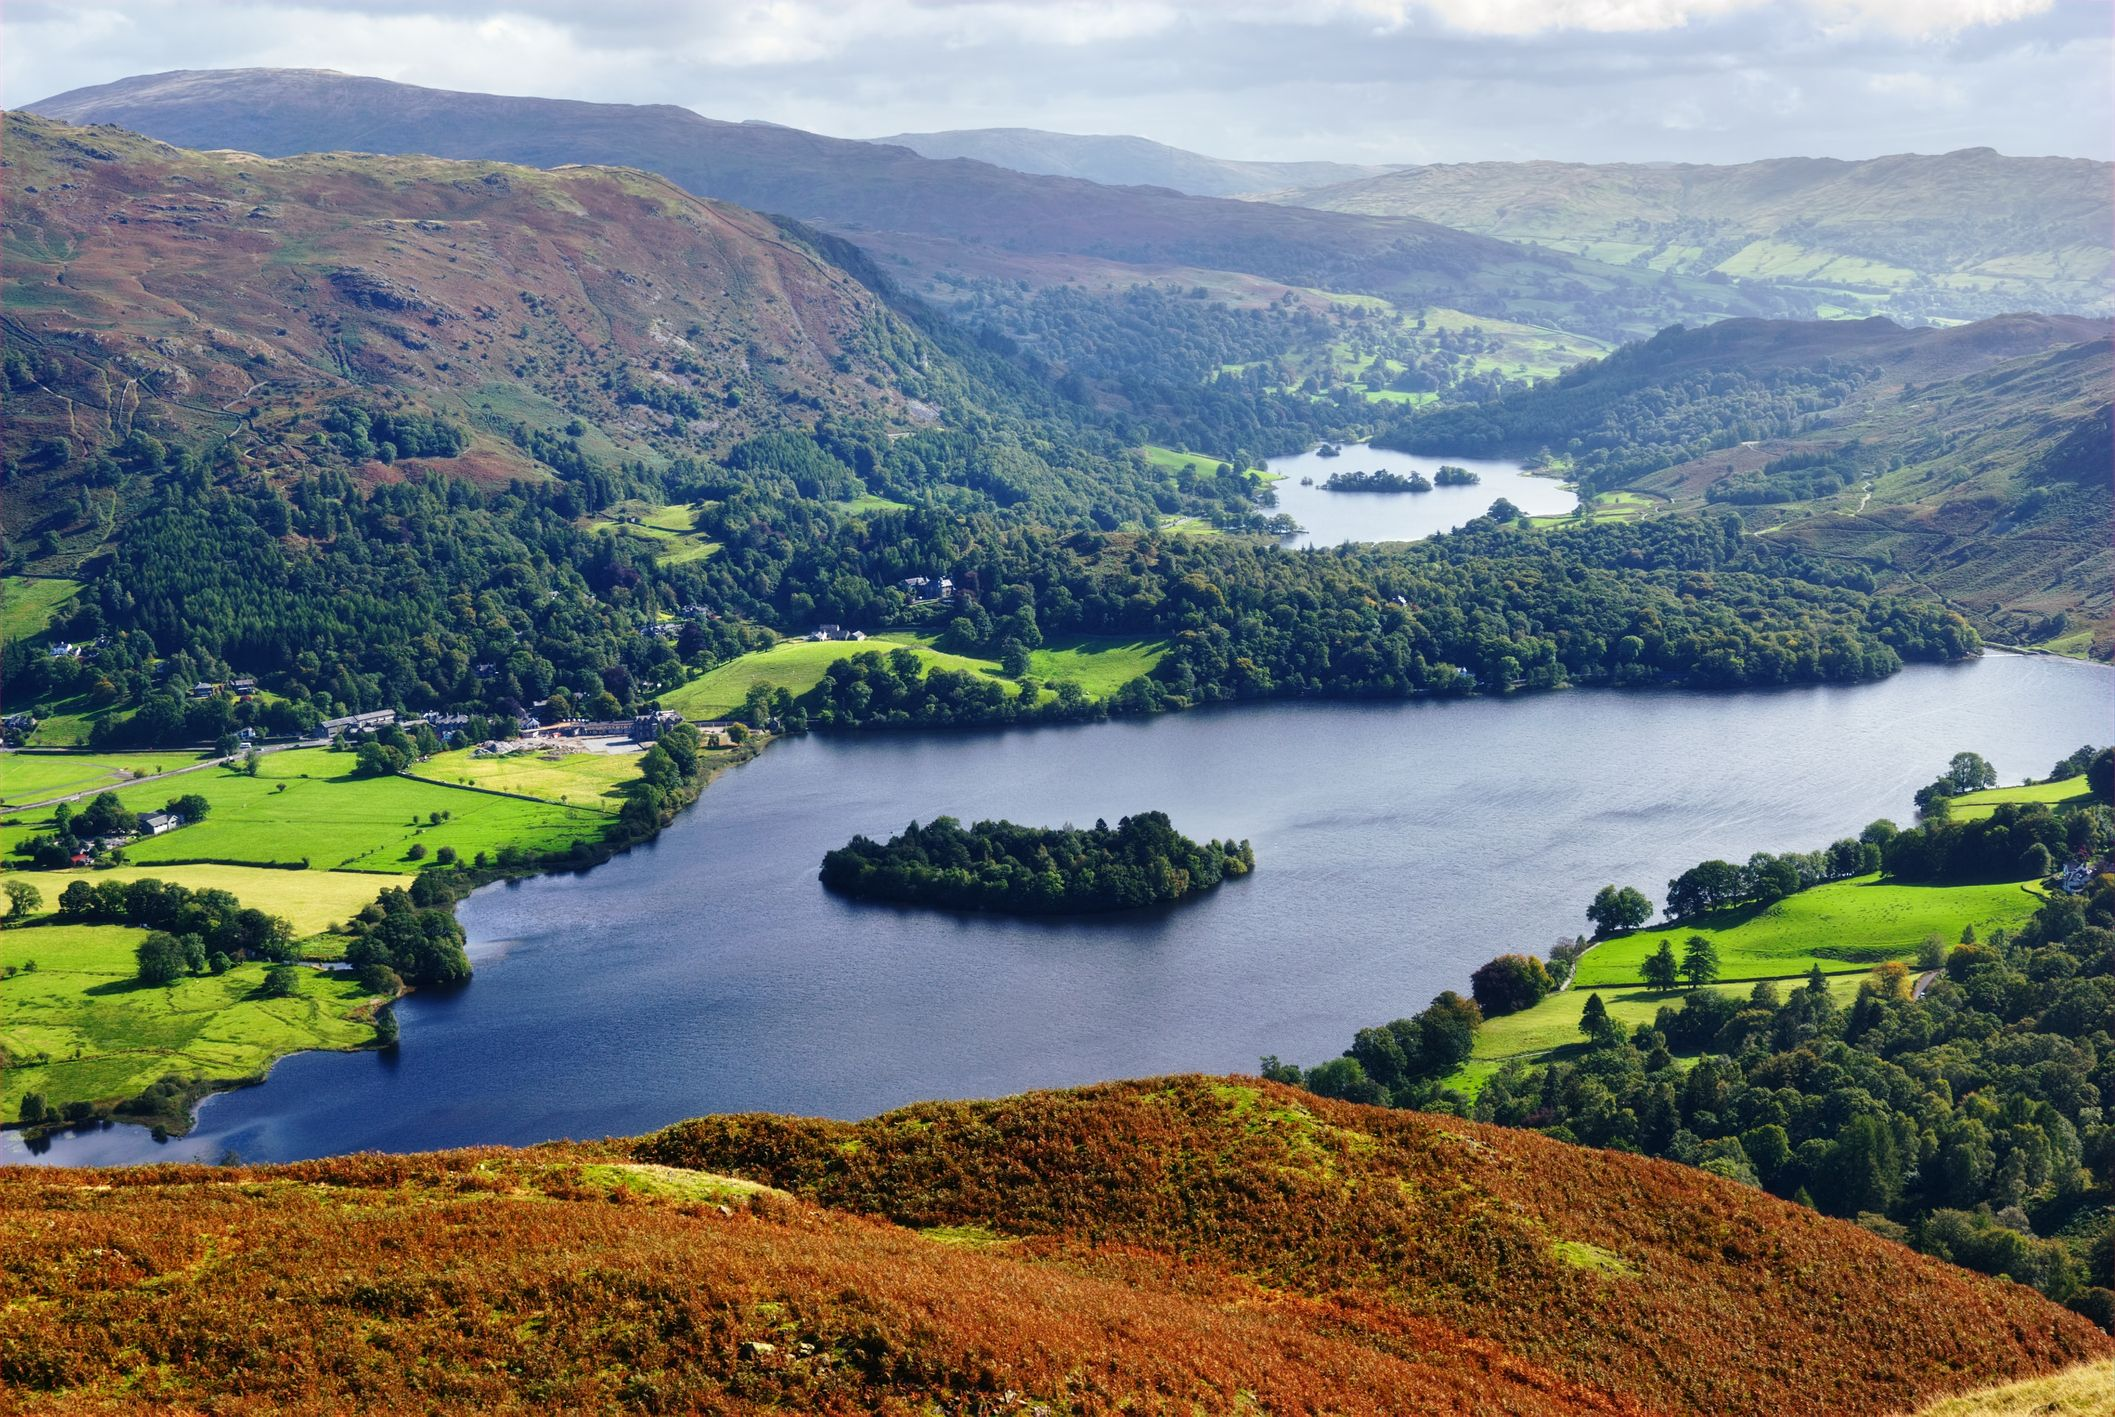 An aerial view of Grasmere from the slopes of Silver How